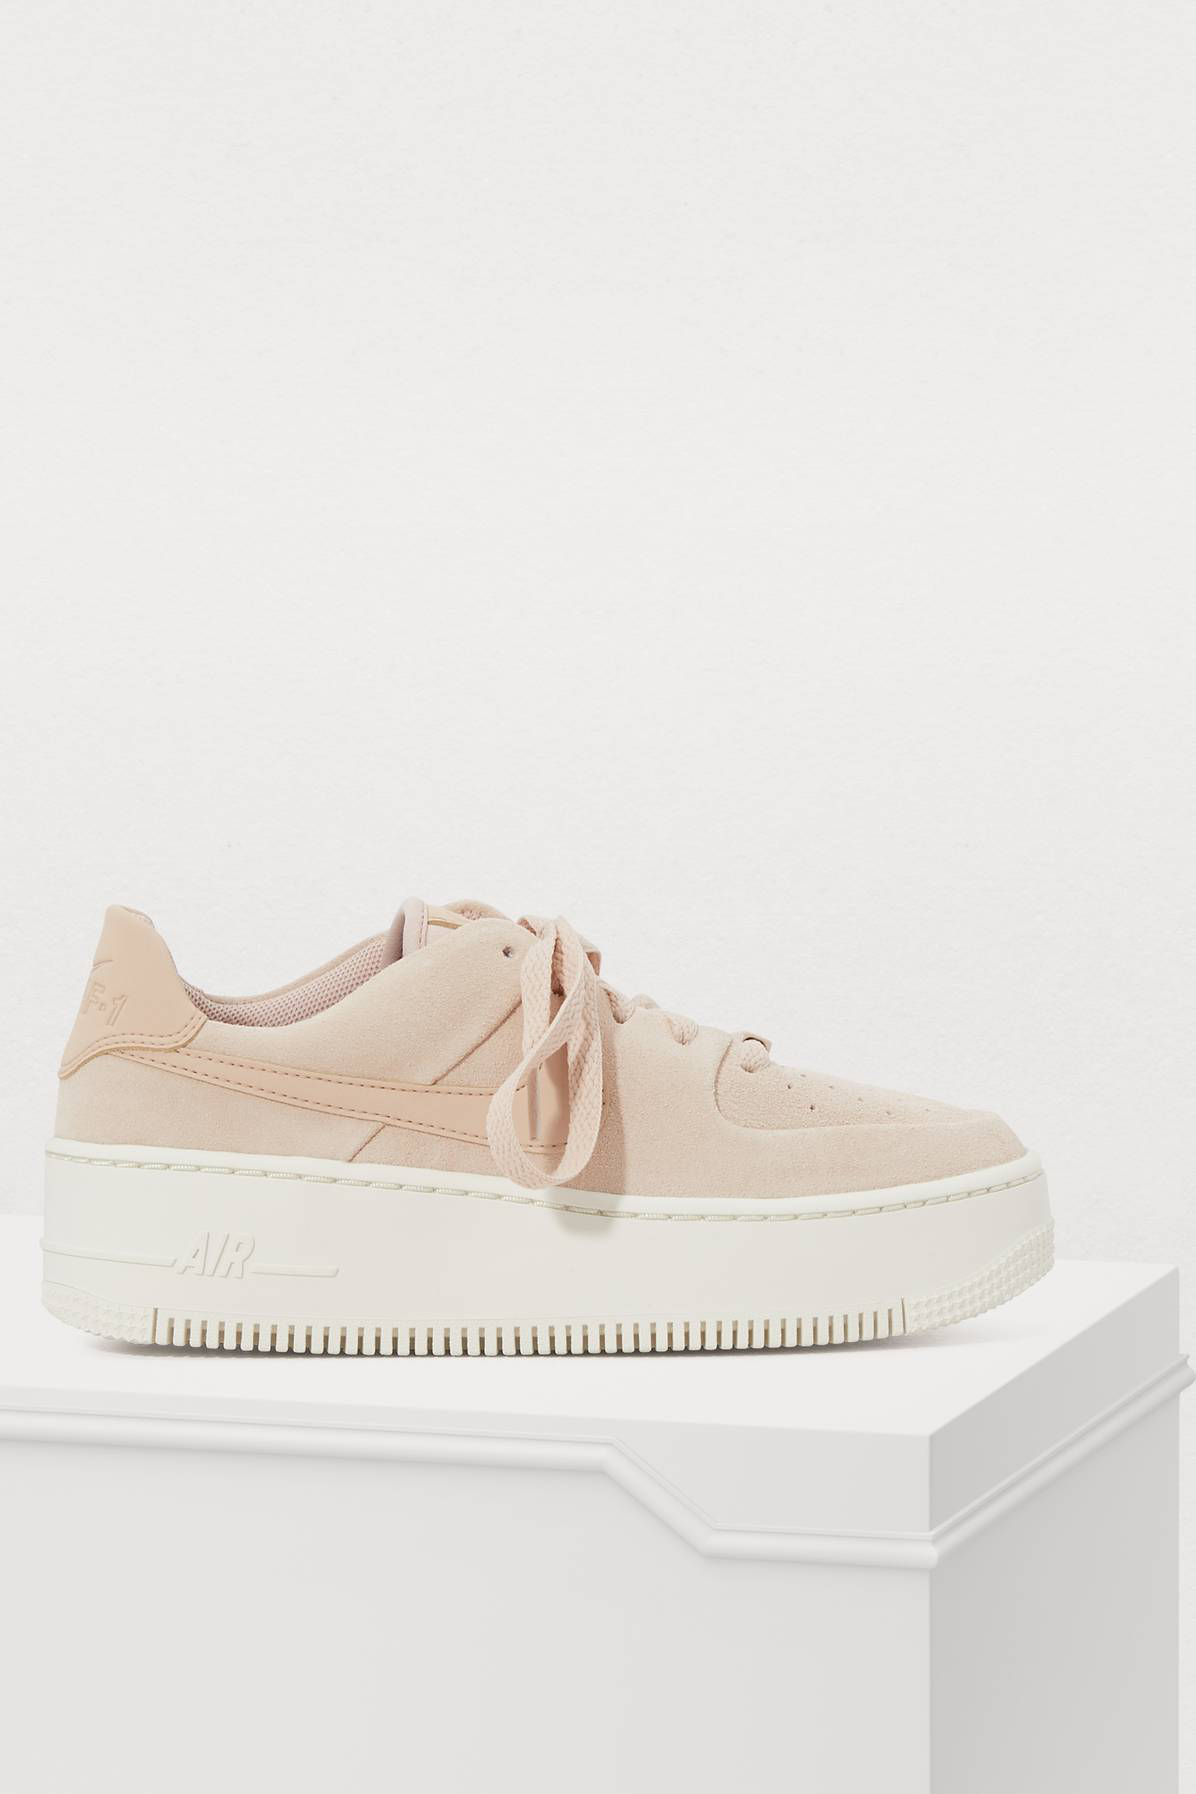 Nike Air Force 1 Sage Low Sneakers In Particle Beige Particle Beige